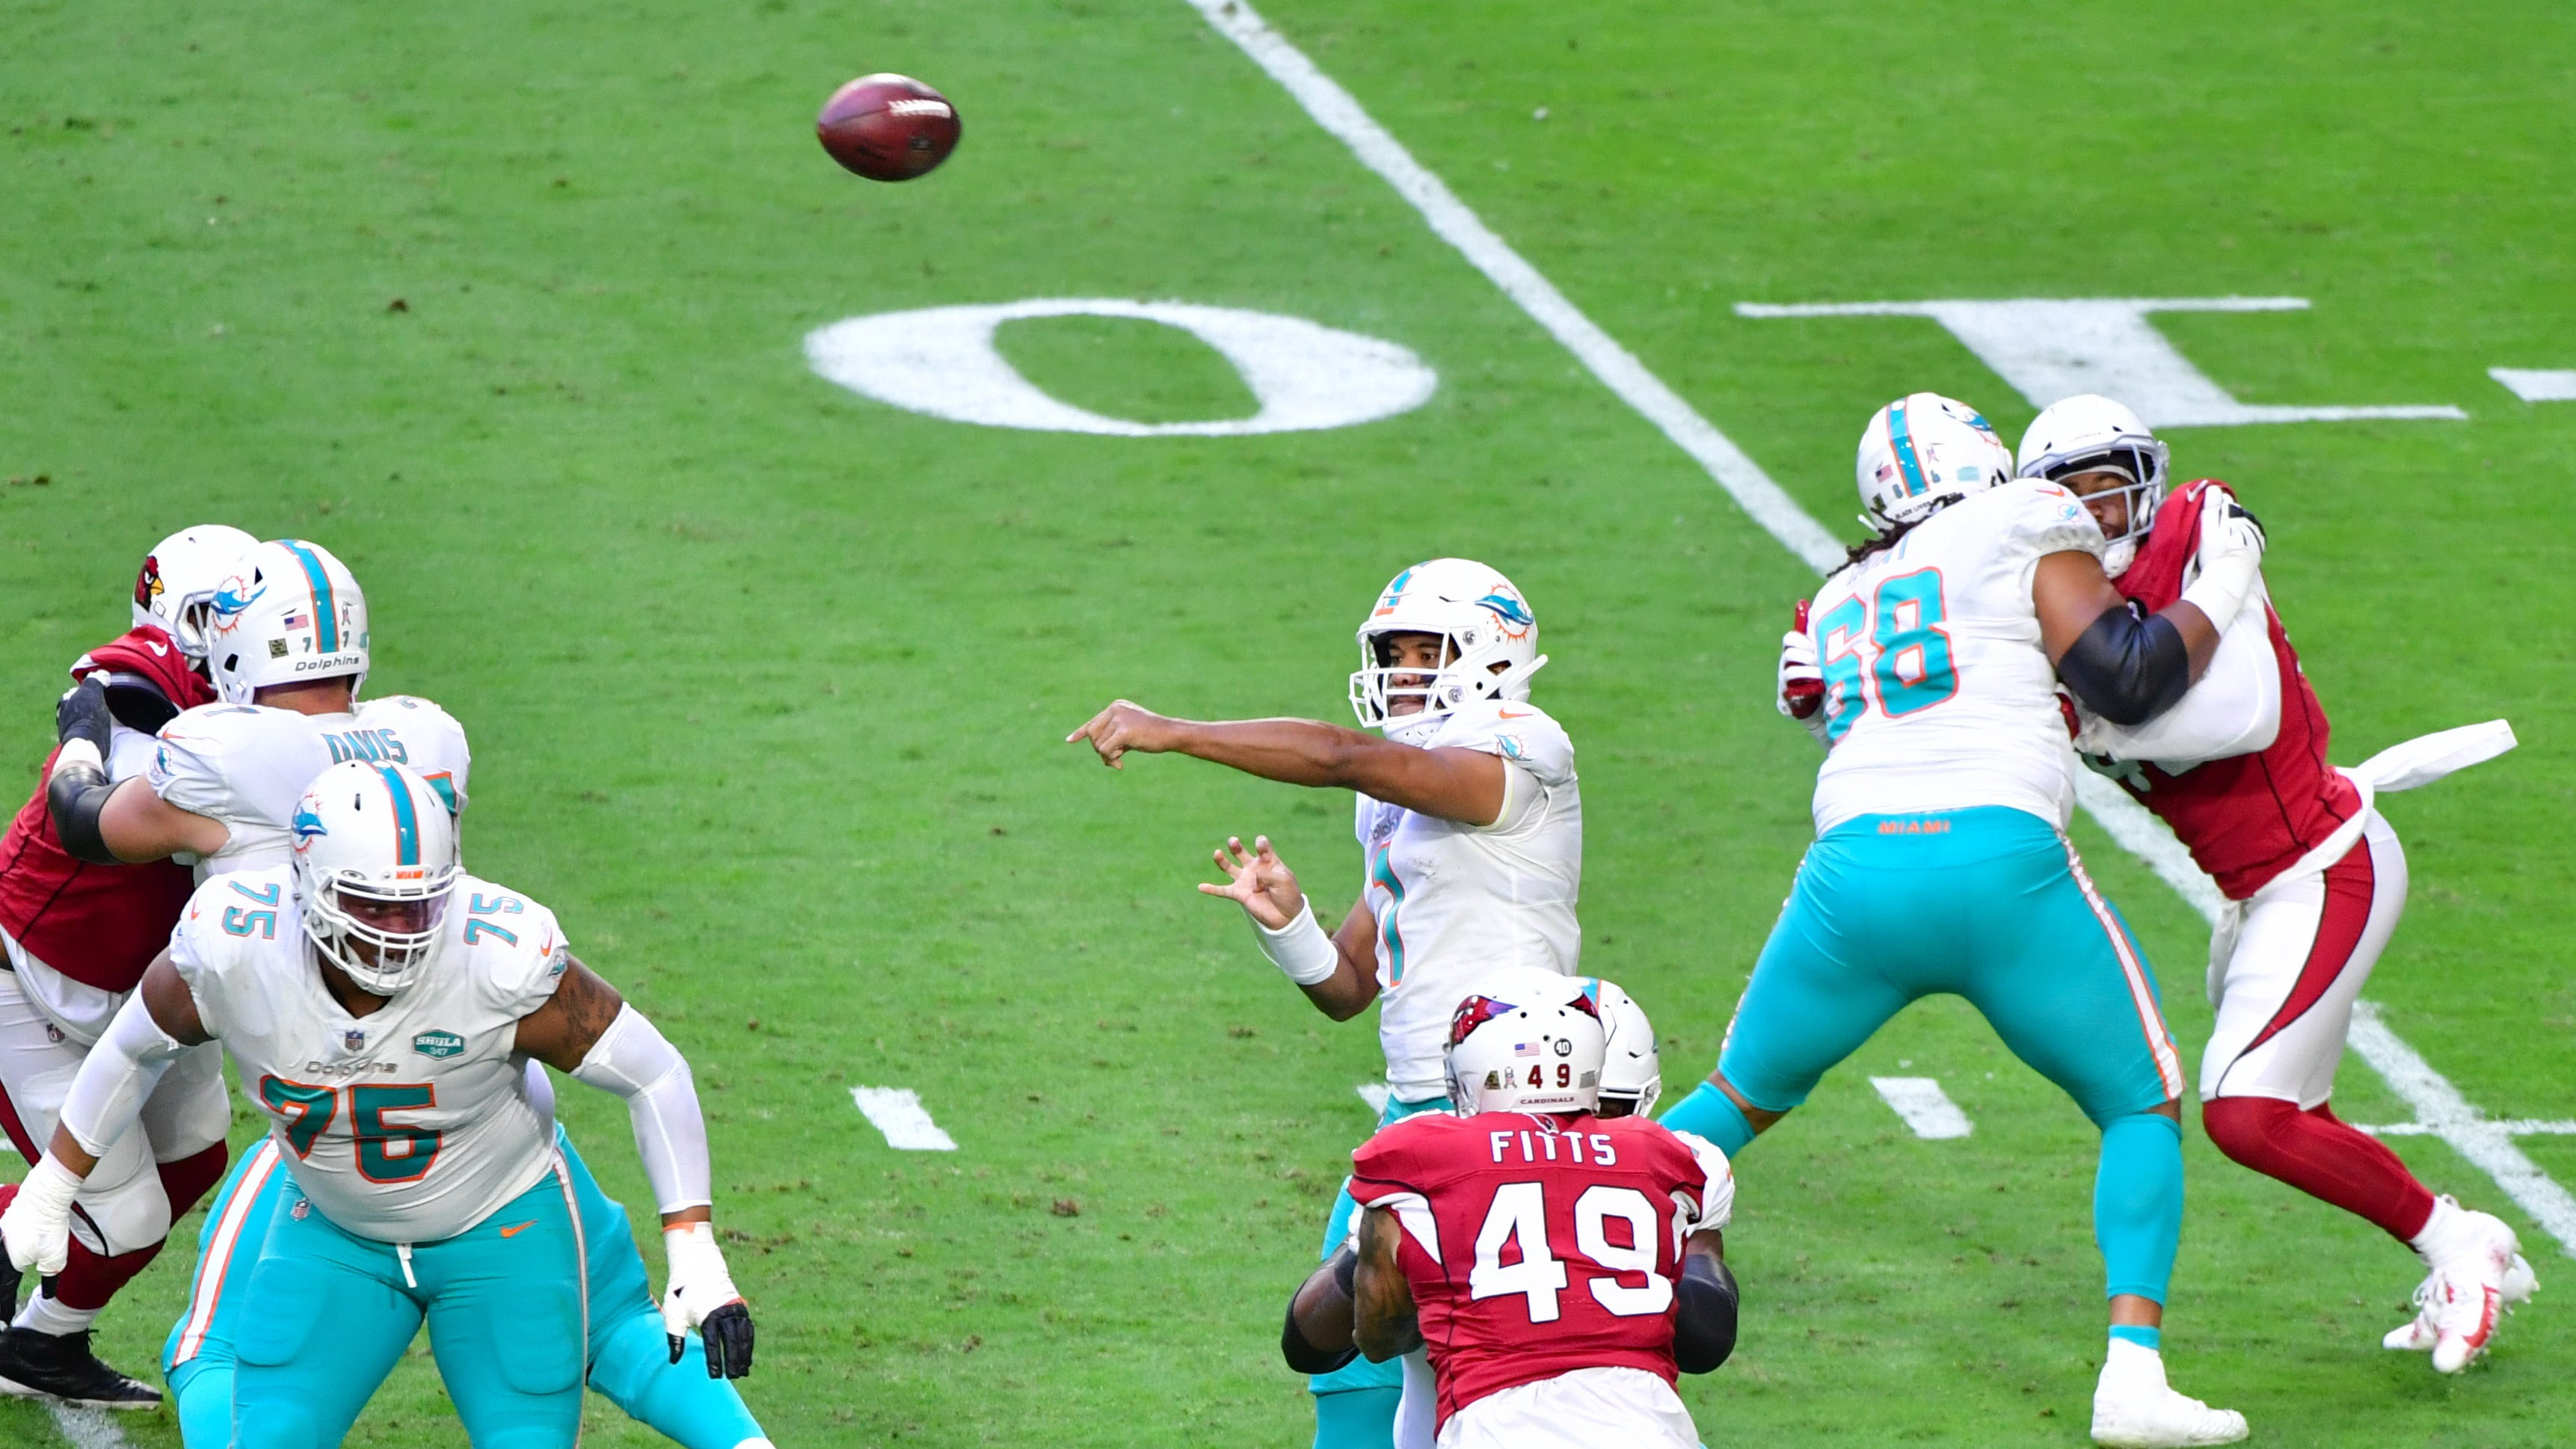 Dolphin defender Tua Tagovailoa pulled through with greater confidence in Sunday's victory over Cardinals.